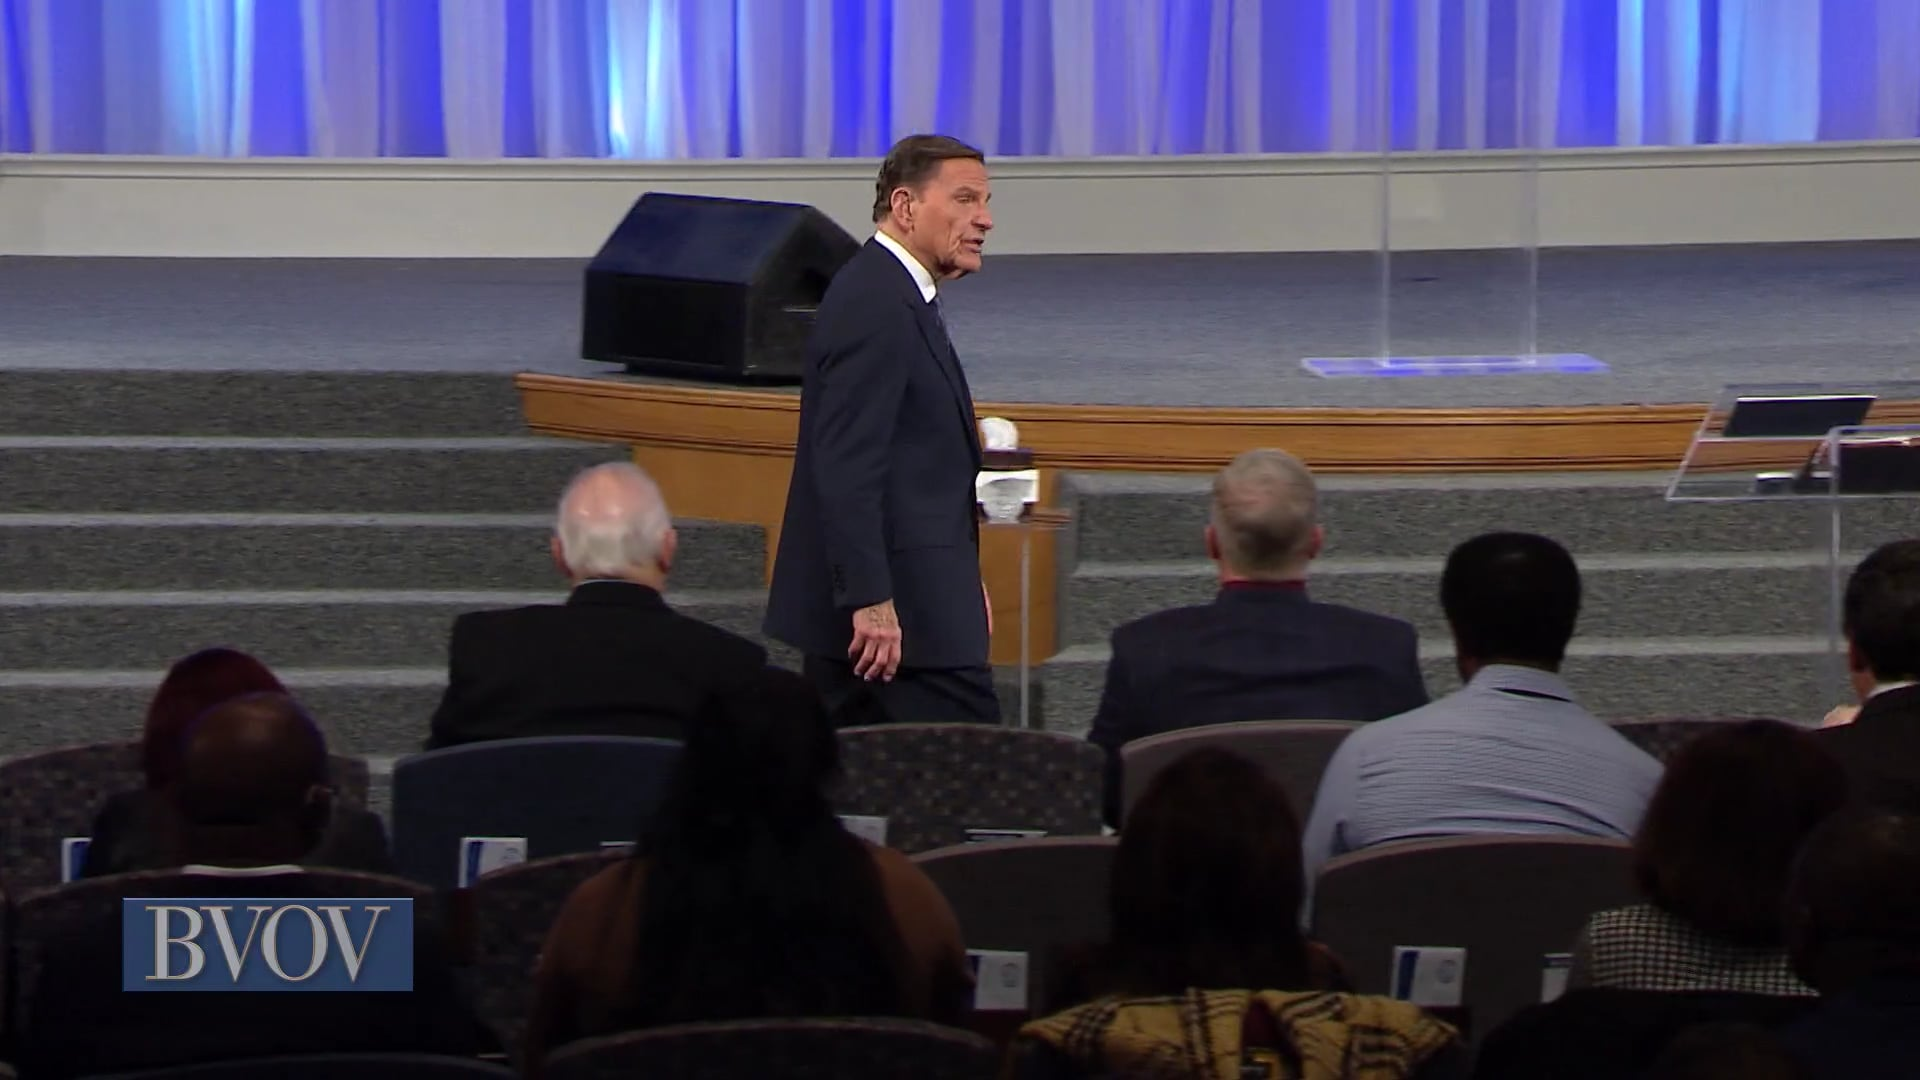 Are you expecting deliverance? Watch Believer's Voice of Victory as Kenneth Copeland teaches you how faith brings freedom from anything holding you in bondage—no matter how big or small. Learn to prepare for what you expect, and get ready for your victory today!